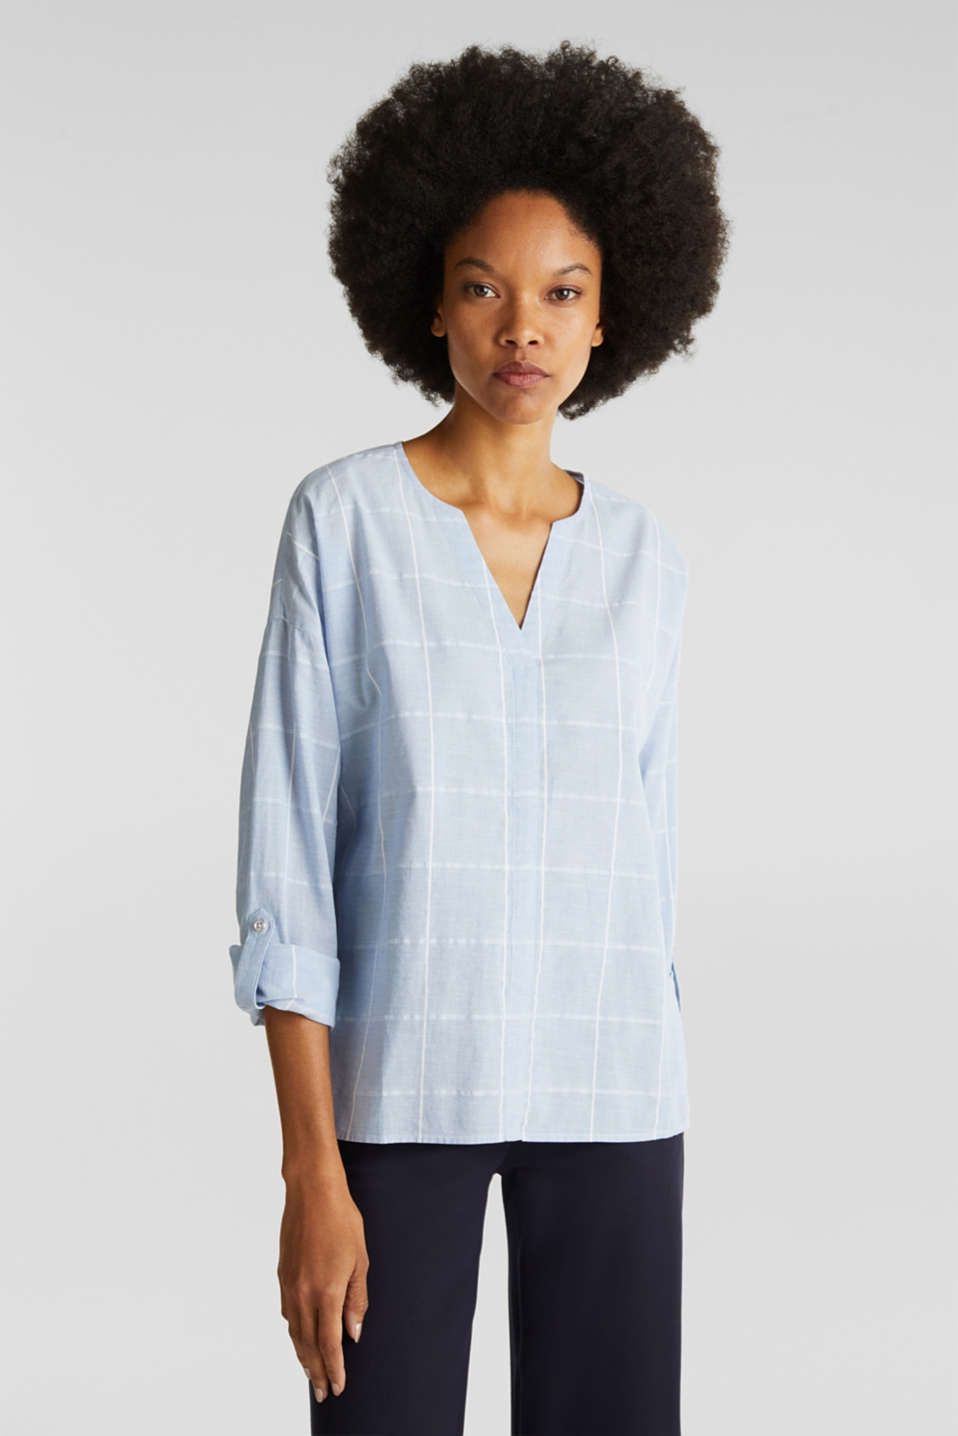 Esprit - 100% cotton blouse with grid checks